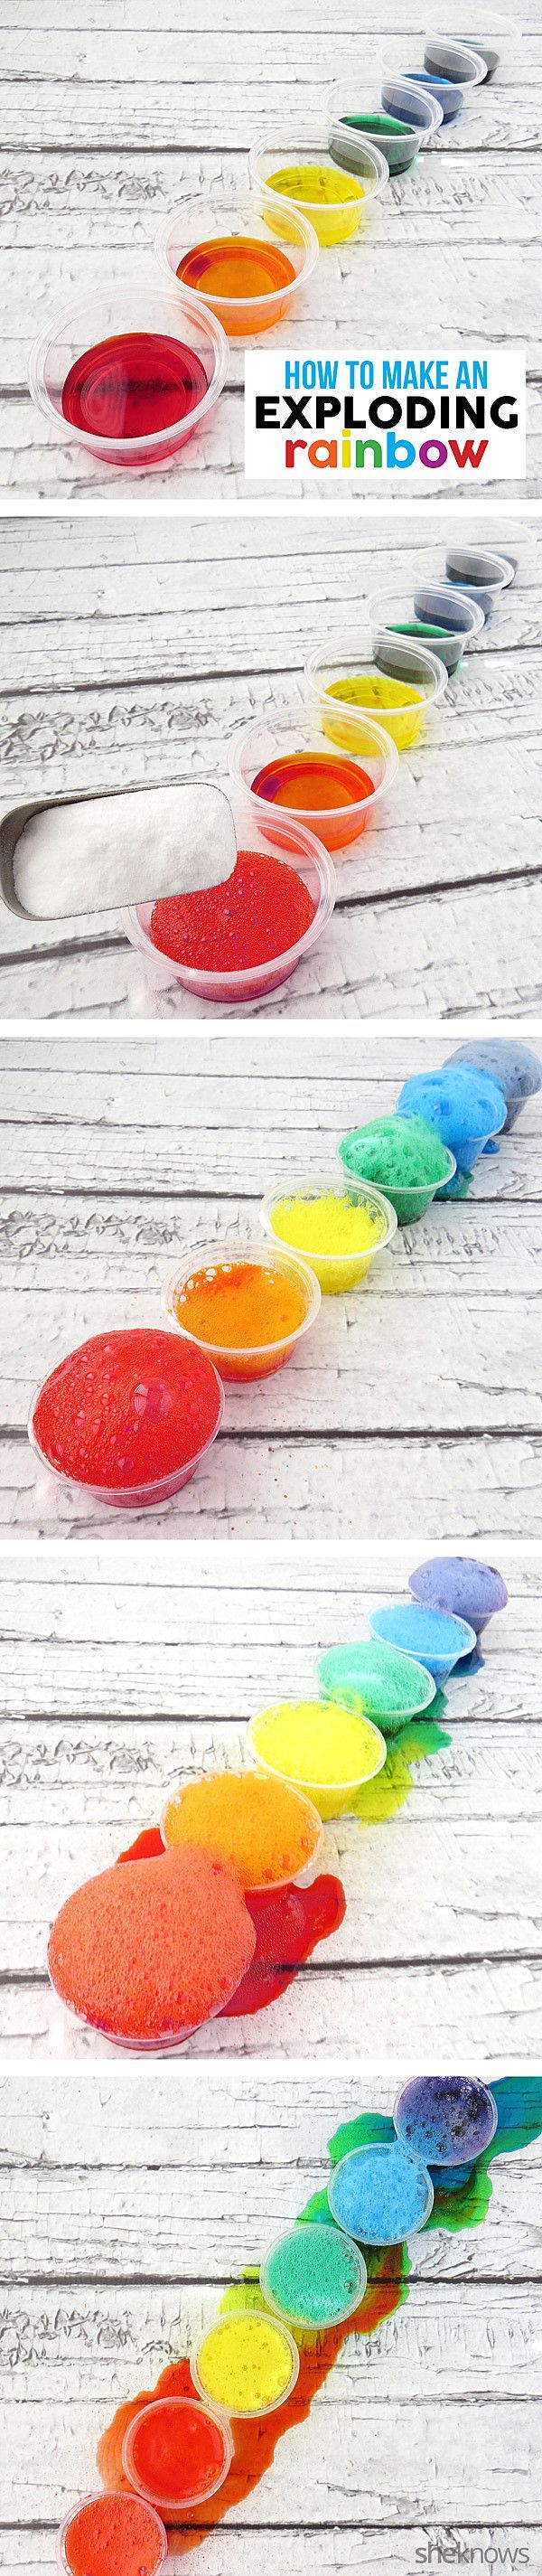 DIY Erupting rainbow is an experiment your little ones will love